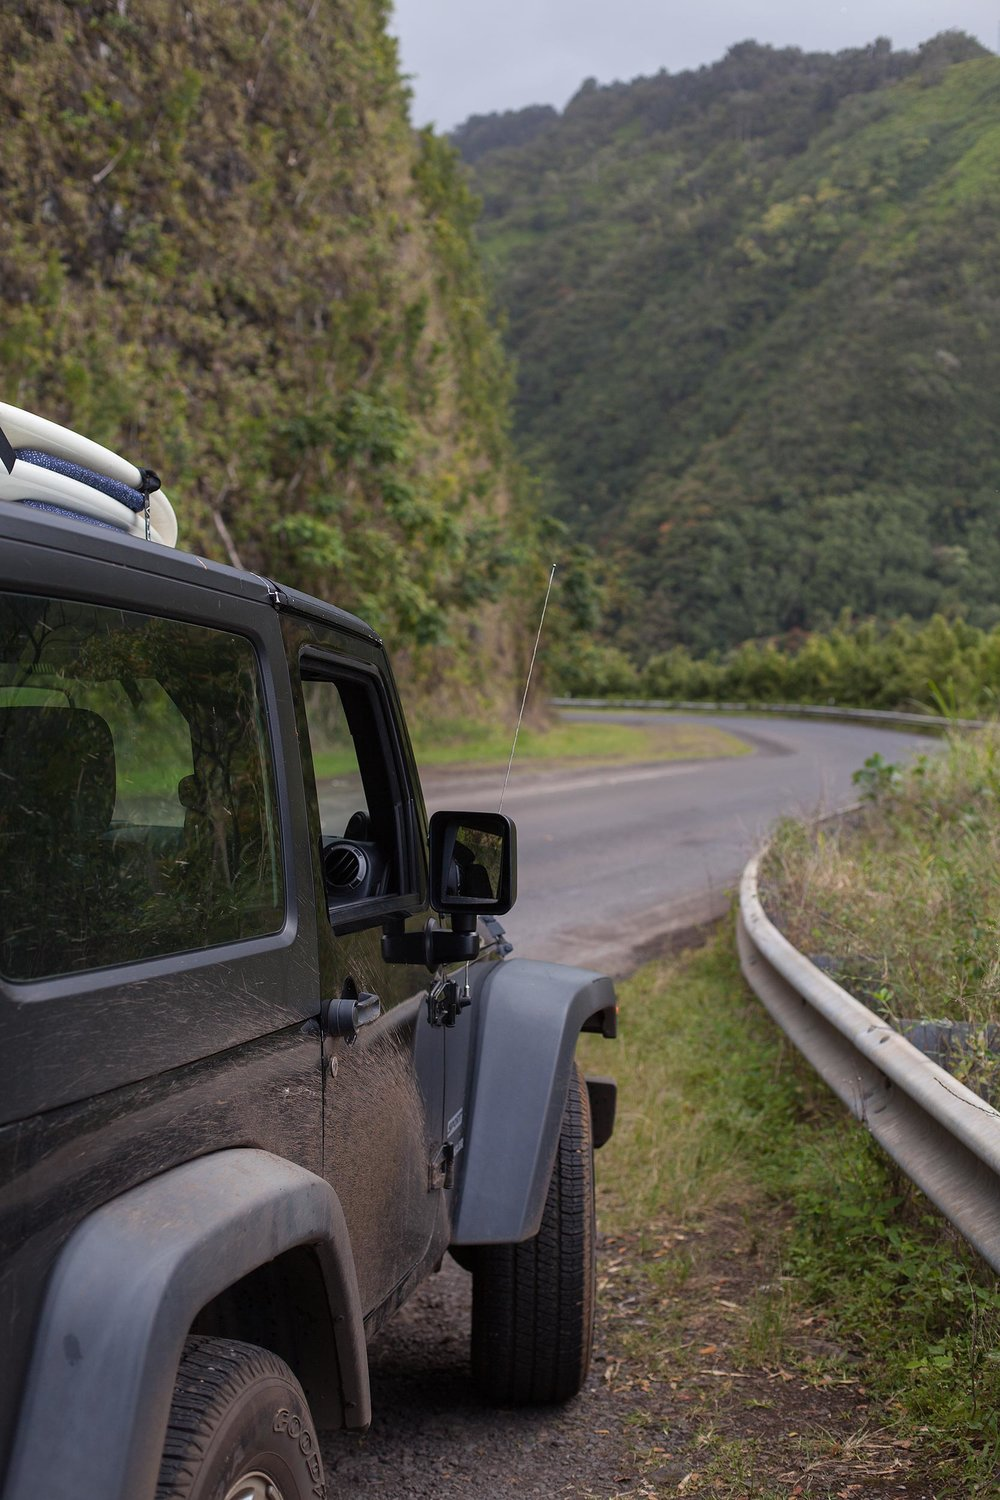 Wrangler-Jeep-sport-road-Maui-Hawaii.jpg